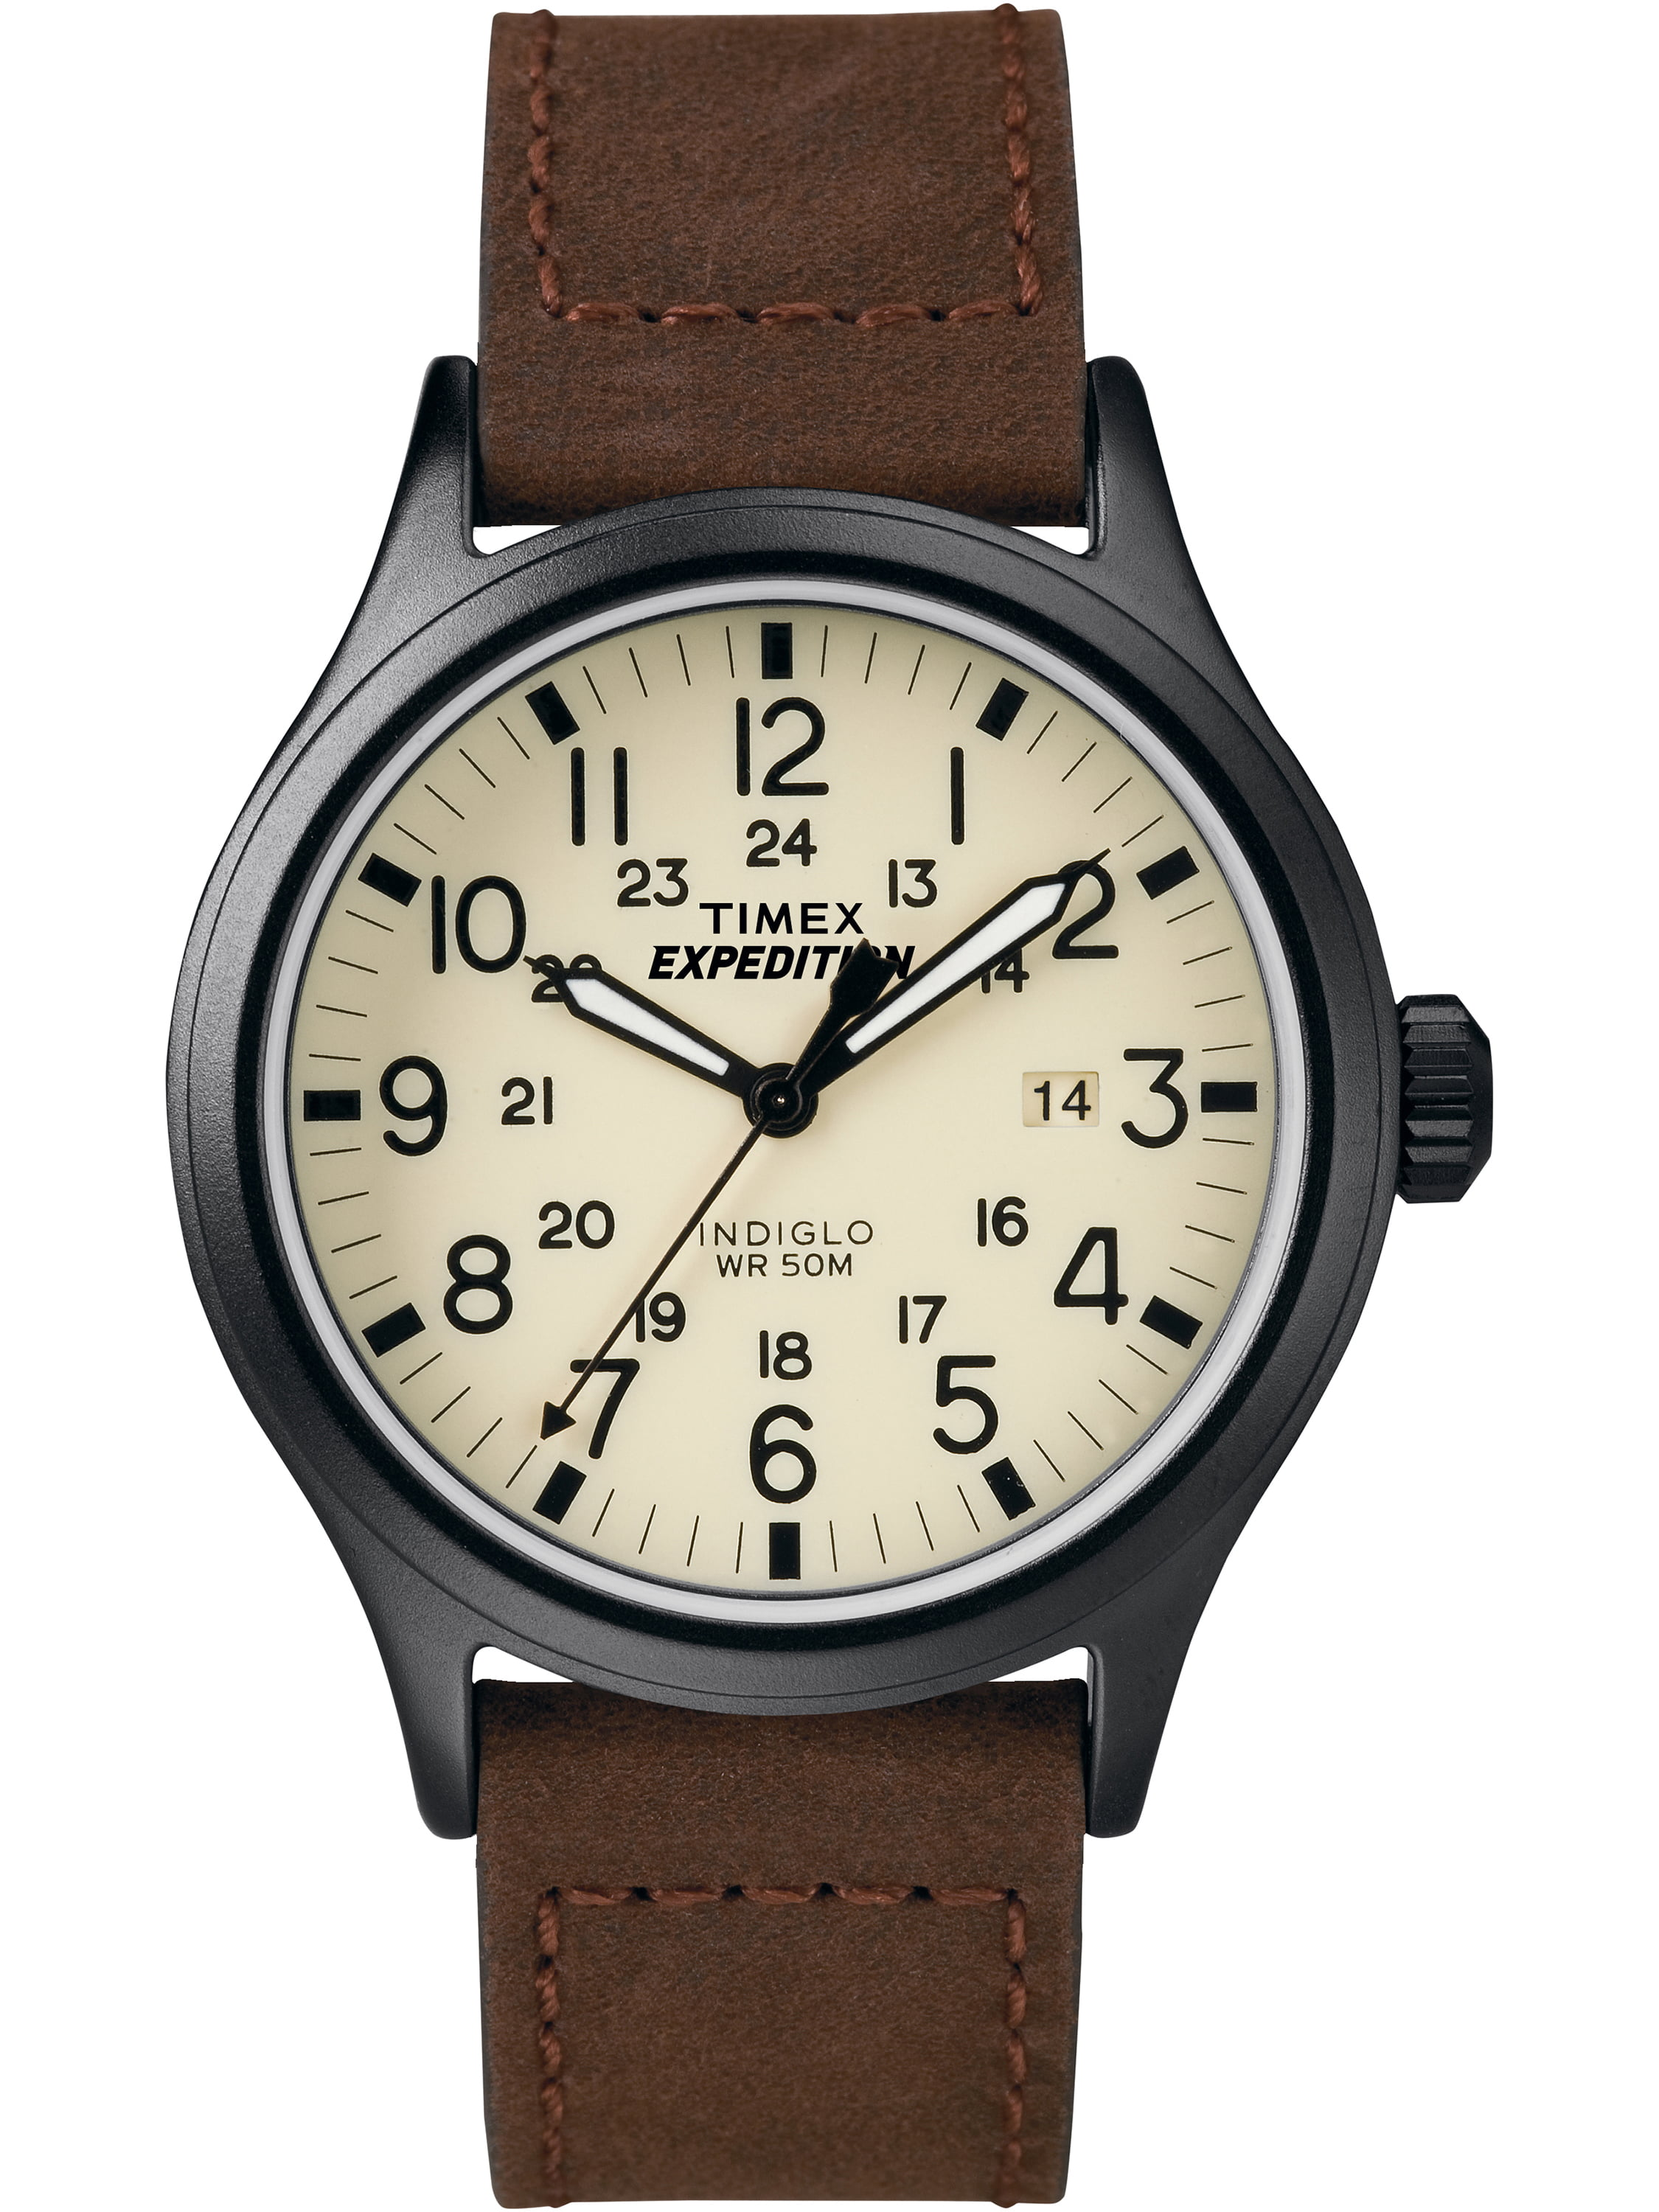 Timex Men's Expedition Scout Brown Watch, Leather Strap by Timex